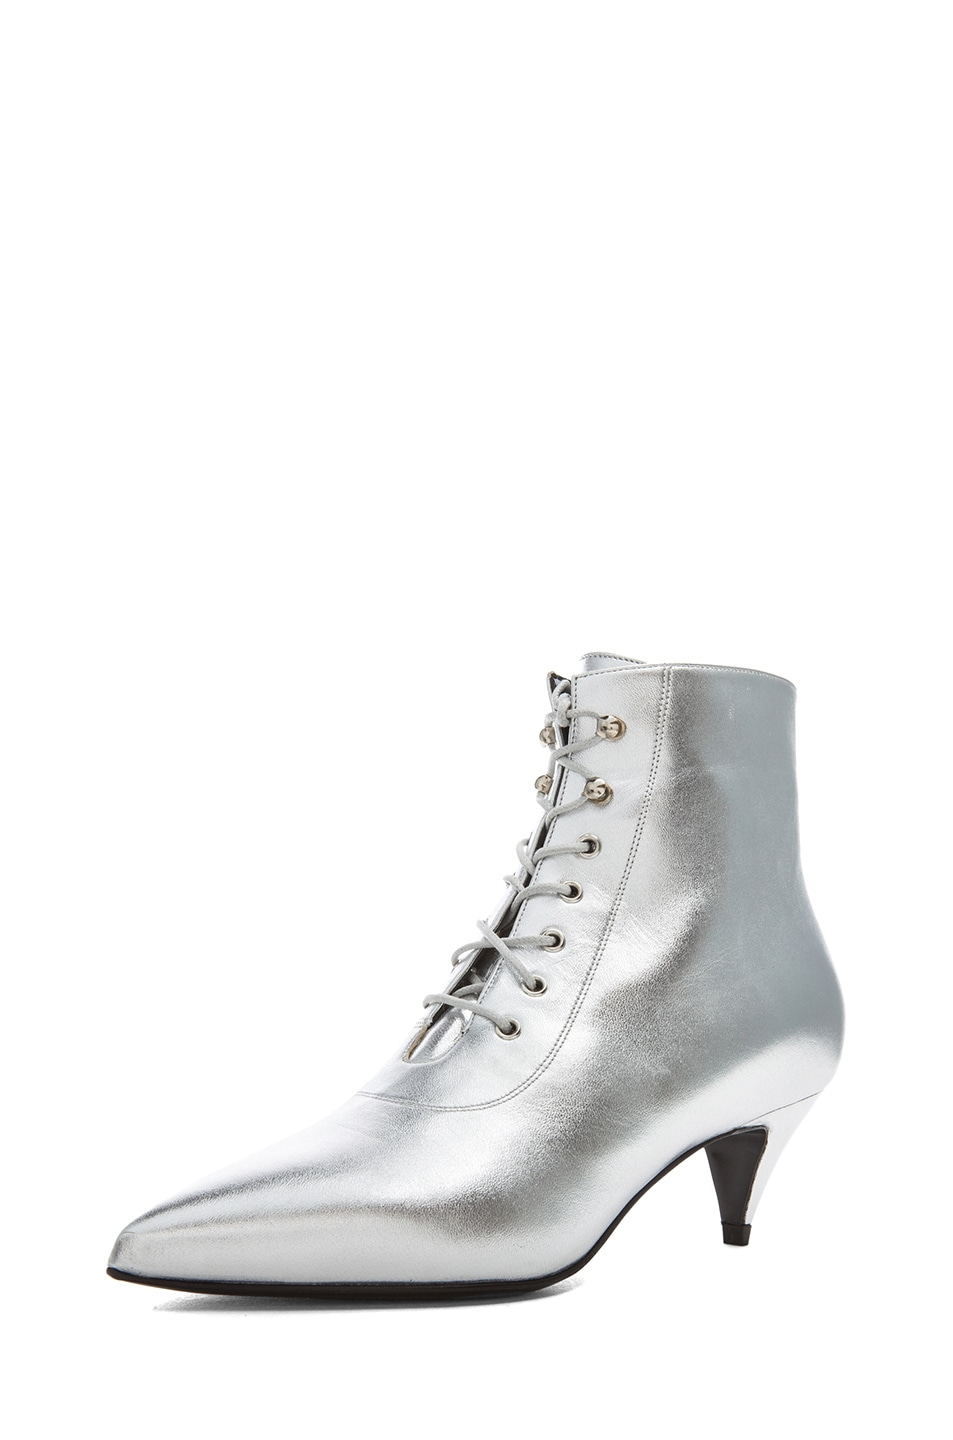 Image 2 of Saint Laurent Cat Lambskin Leather Booties in Silver